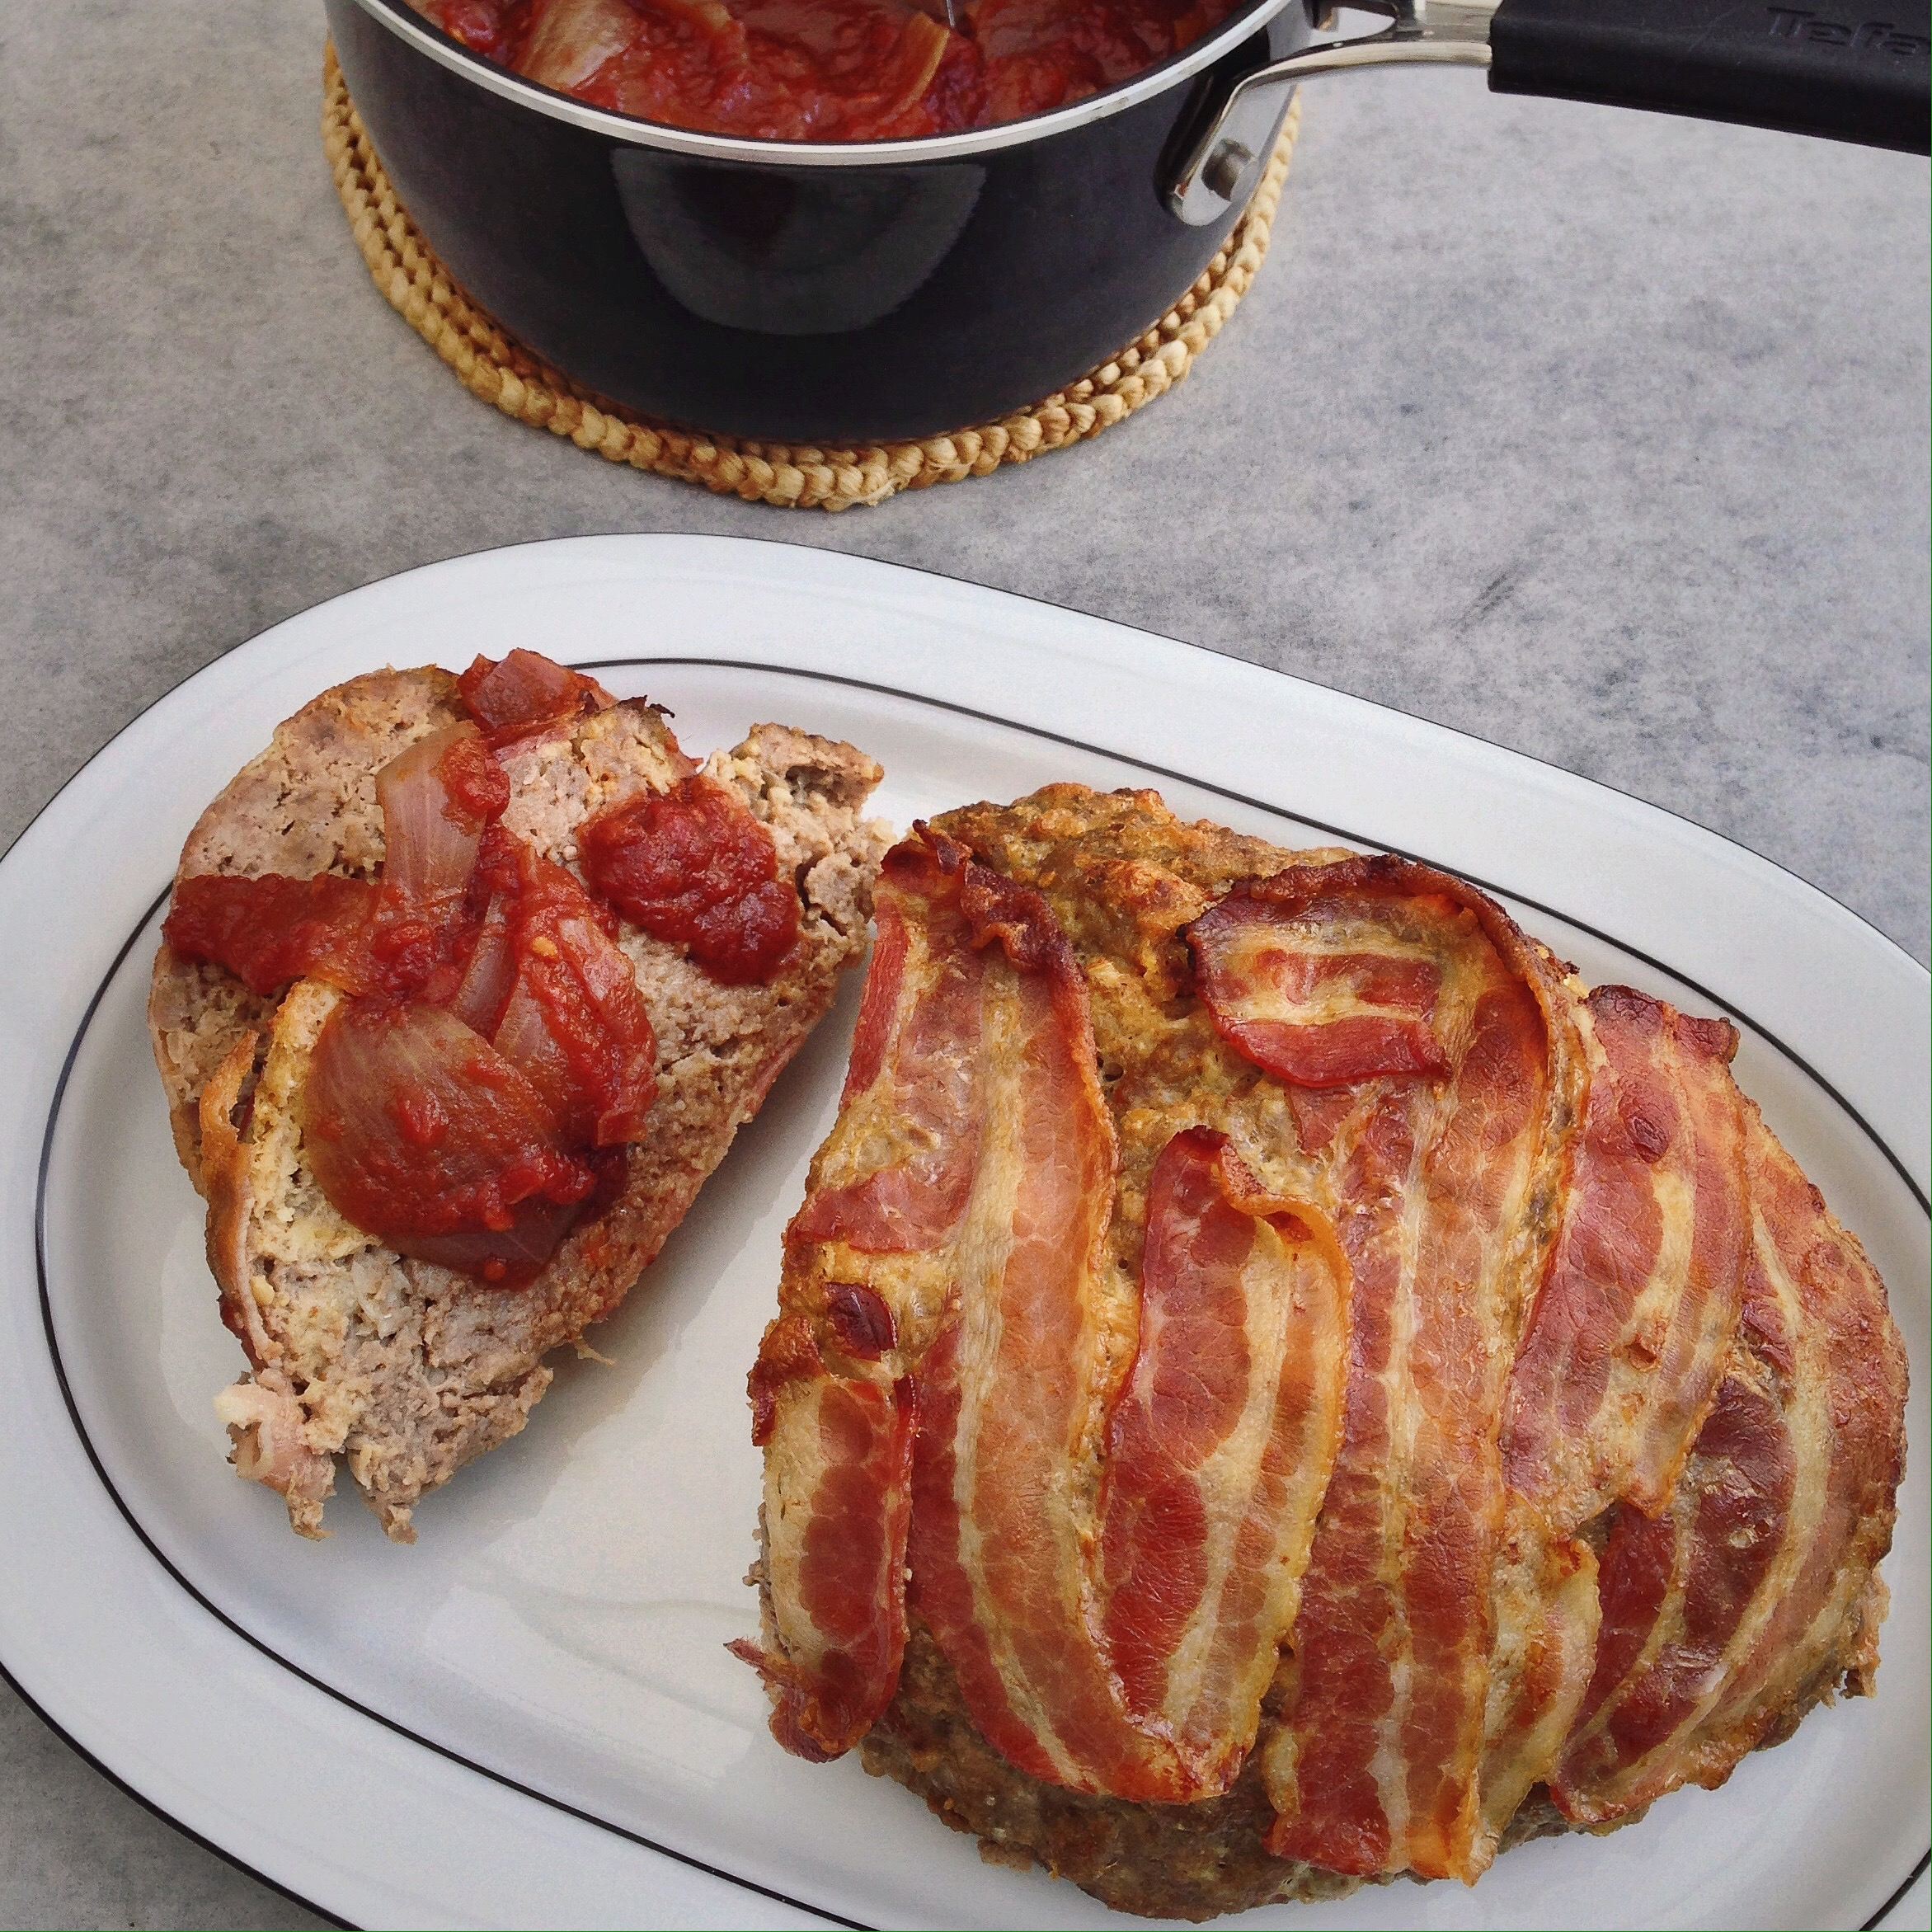 gehaktbrood met tomatensaus, by Cookingdom